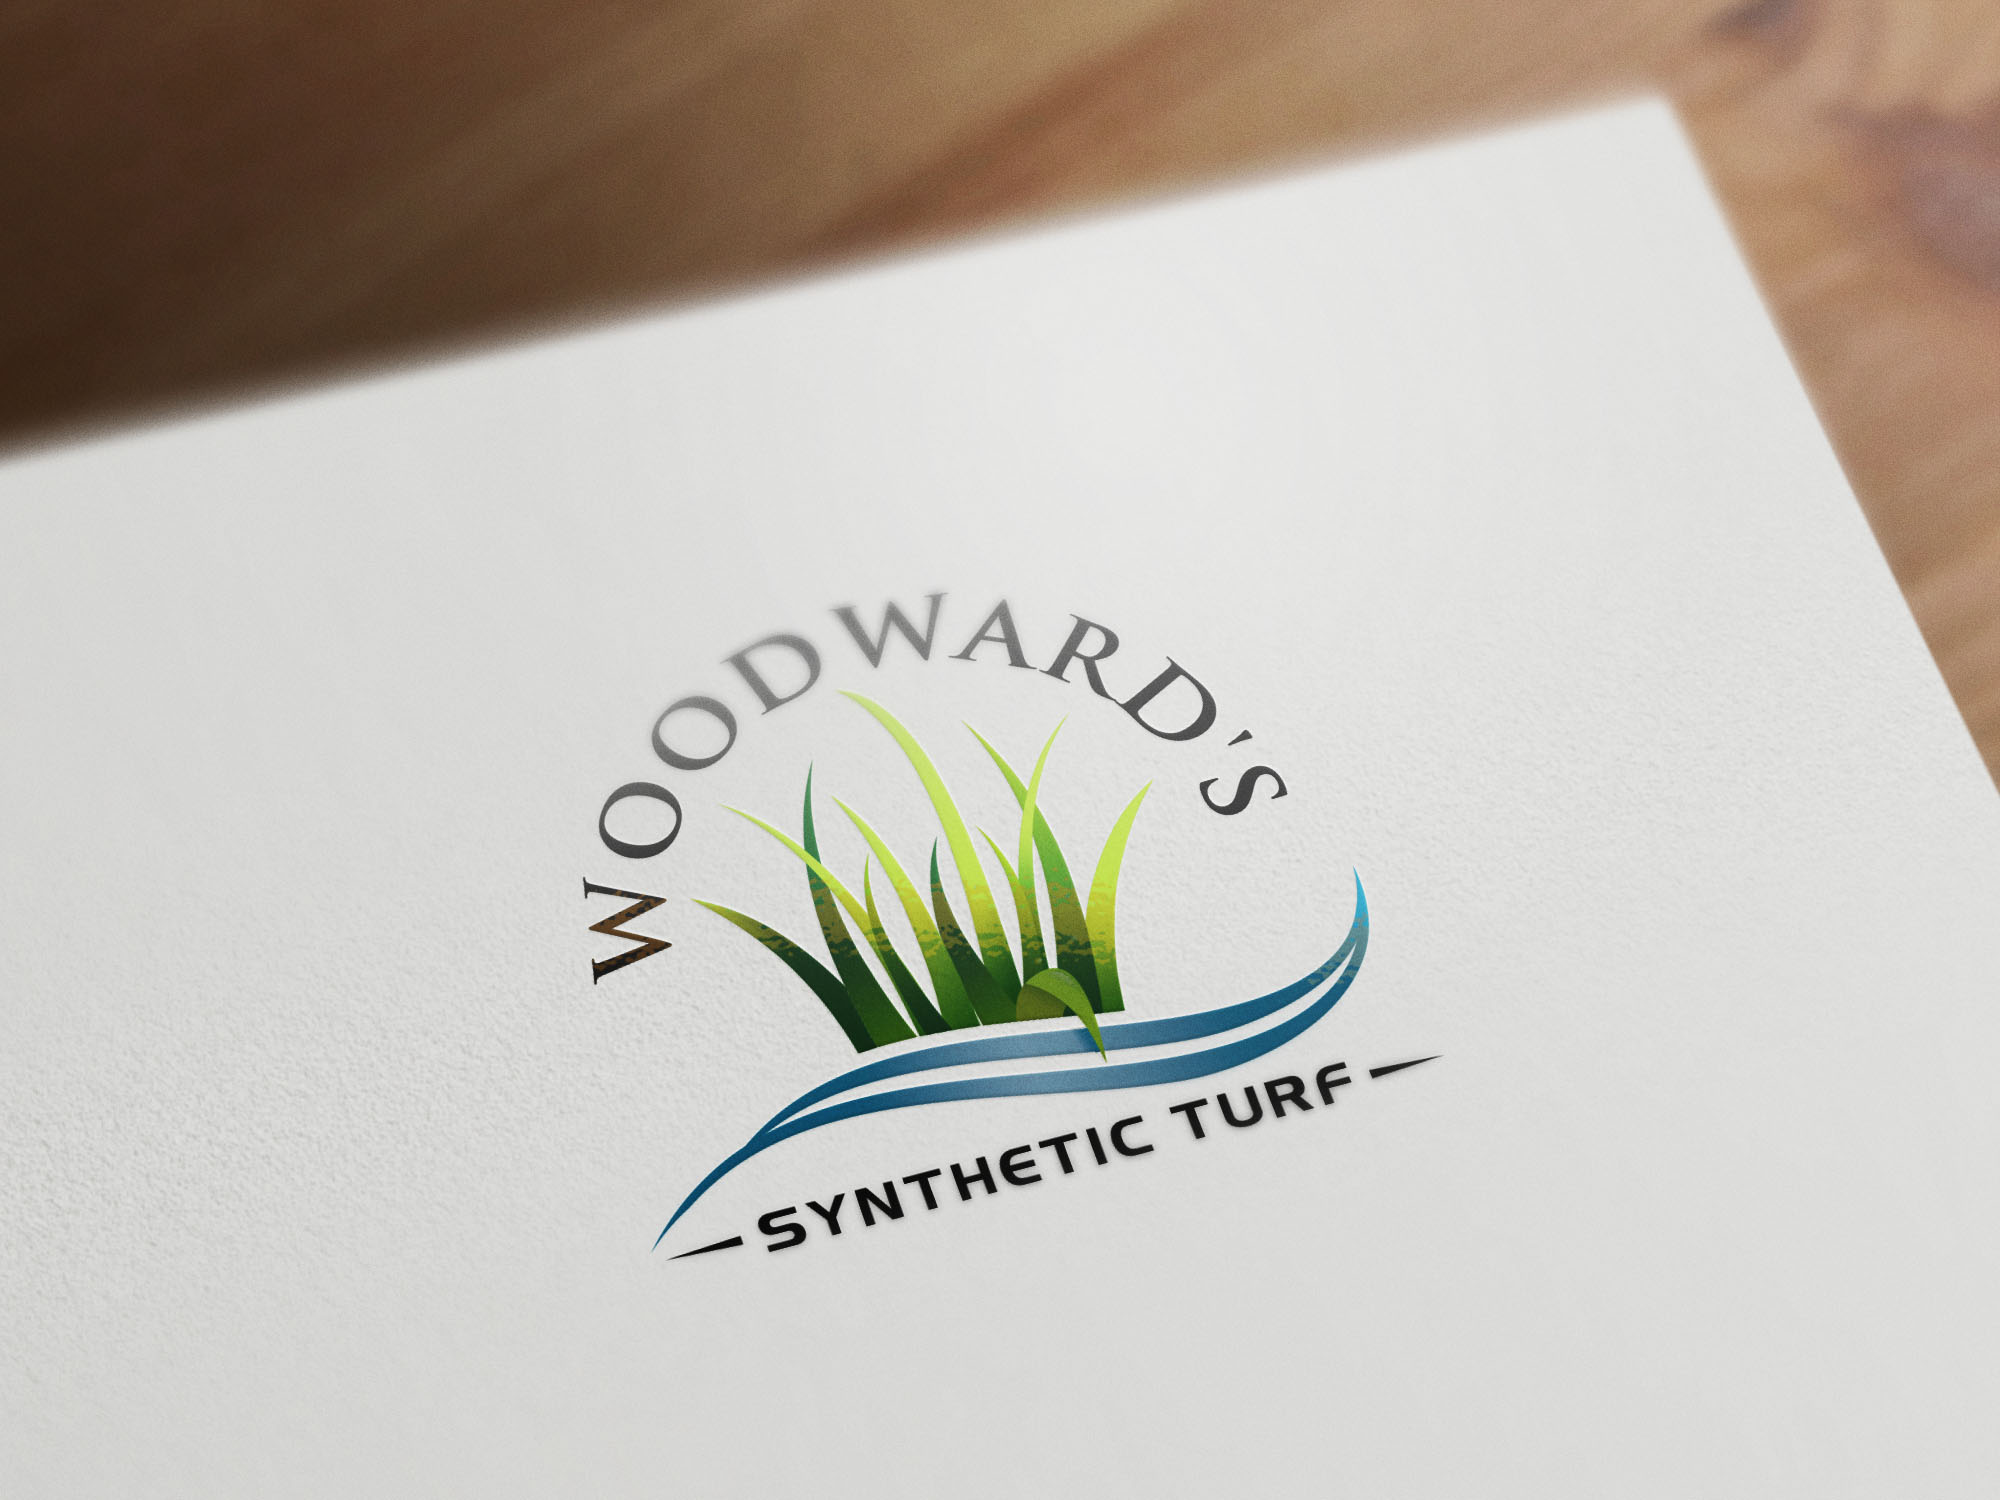 Logo Design by Raymond Garcia - Entry No. 45 in the Logo Design Contest Artistic Logo Design for Woodward's Synthetic Turf.